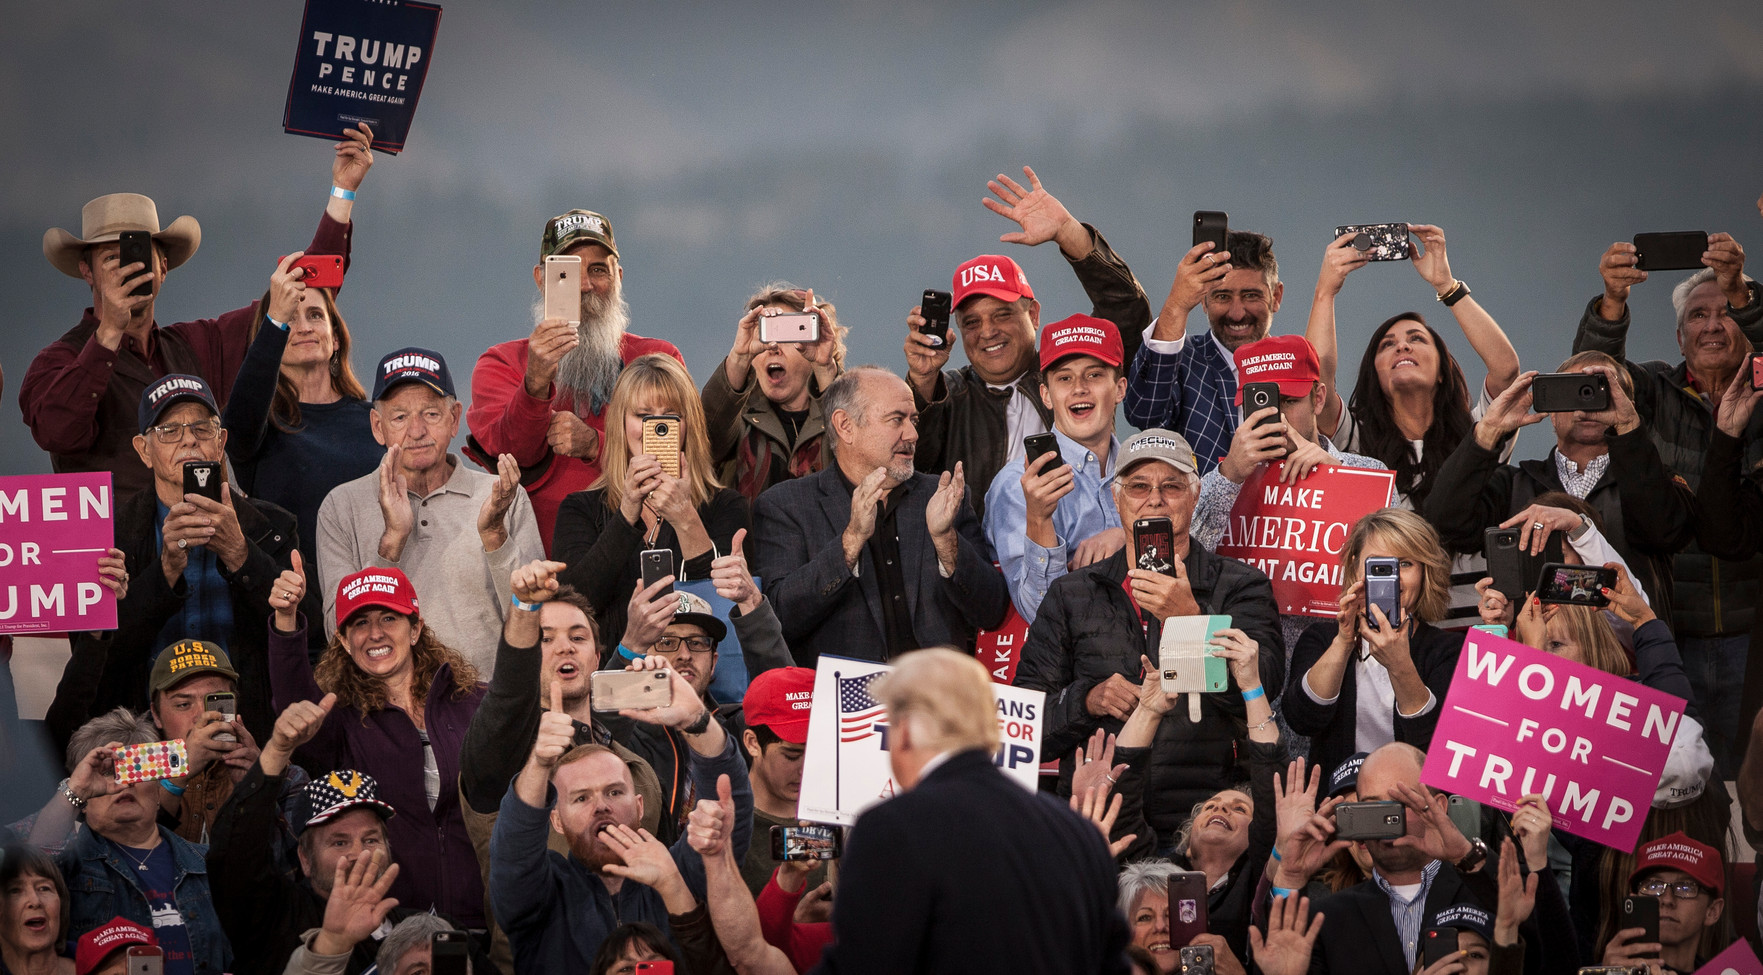 President Donald Trump greets the crowd at his Missoula Rally on Oct. 18, 2018 at the Minuteman Aviation Hangar. The rally was held at the hangar to facilitate simple exit and entry for the President, who didn't have to leave the tarmac.